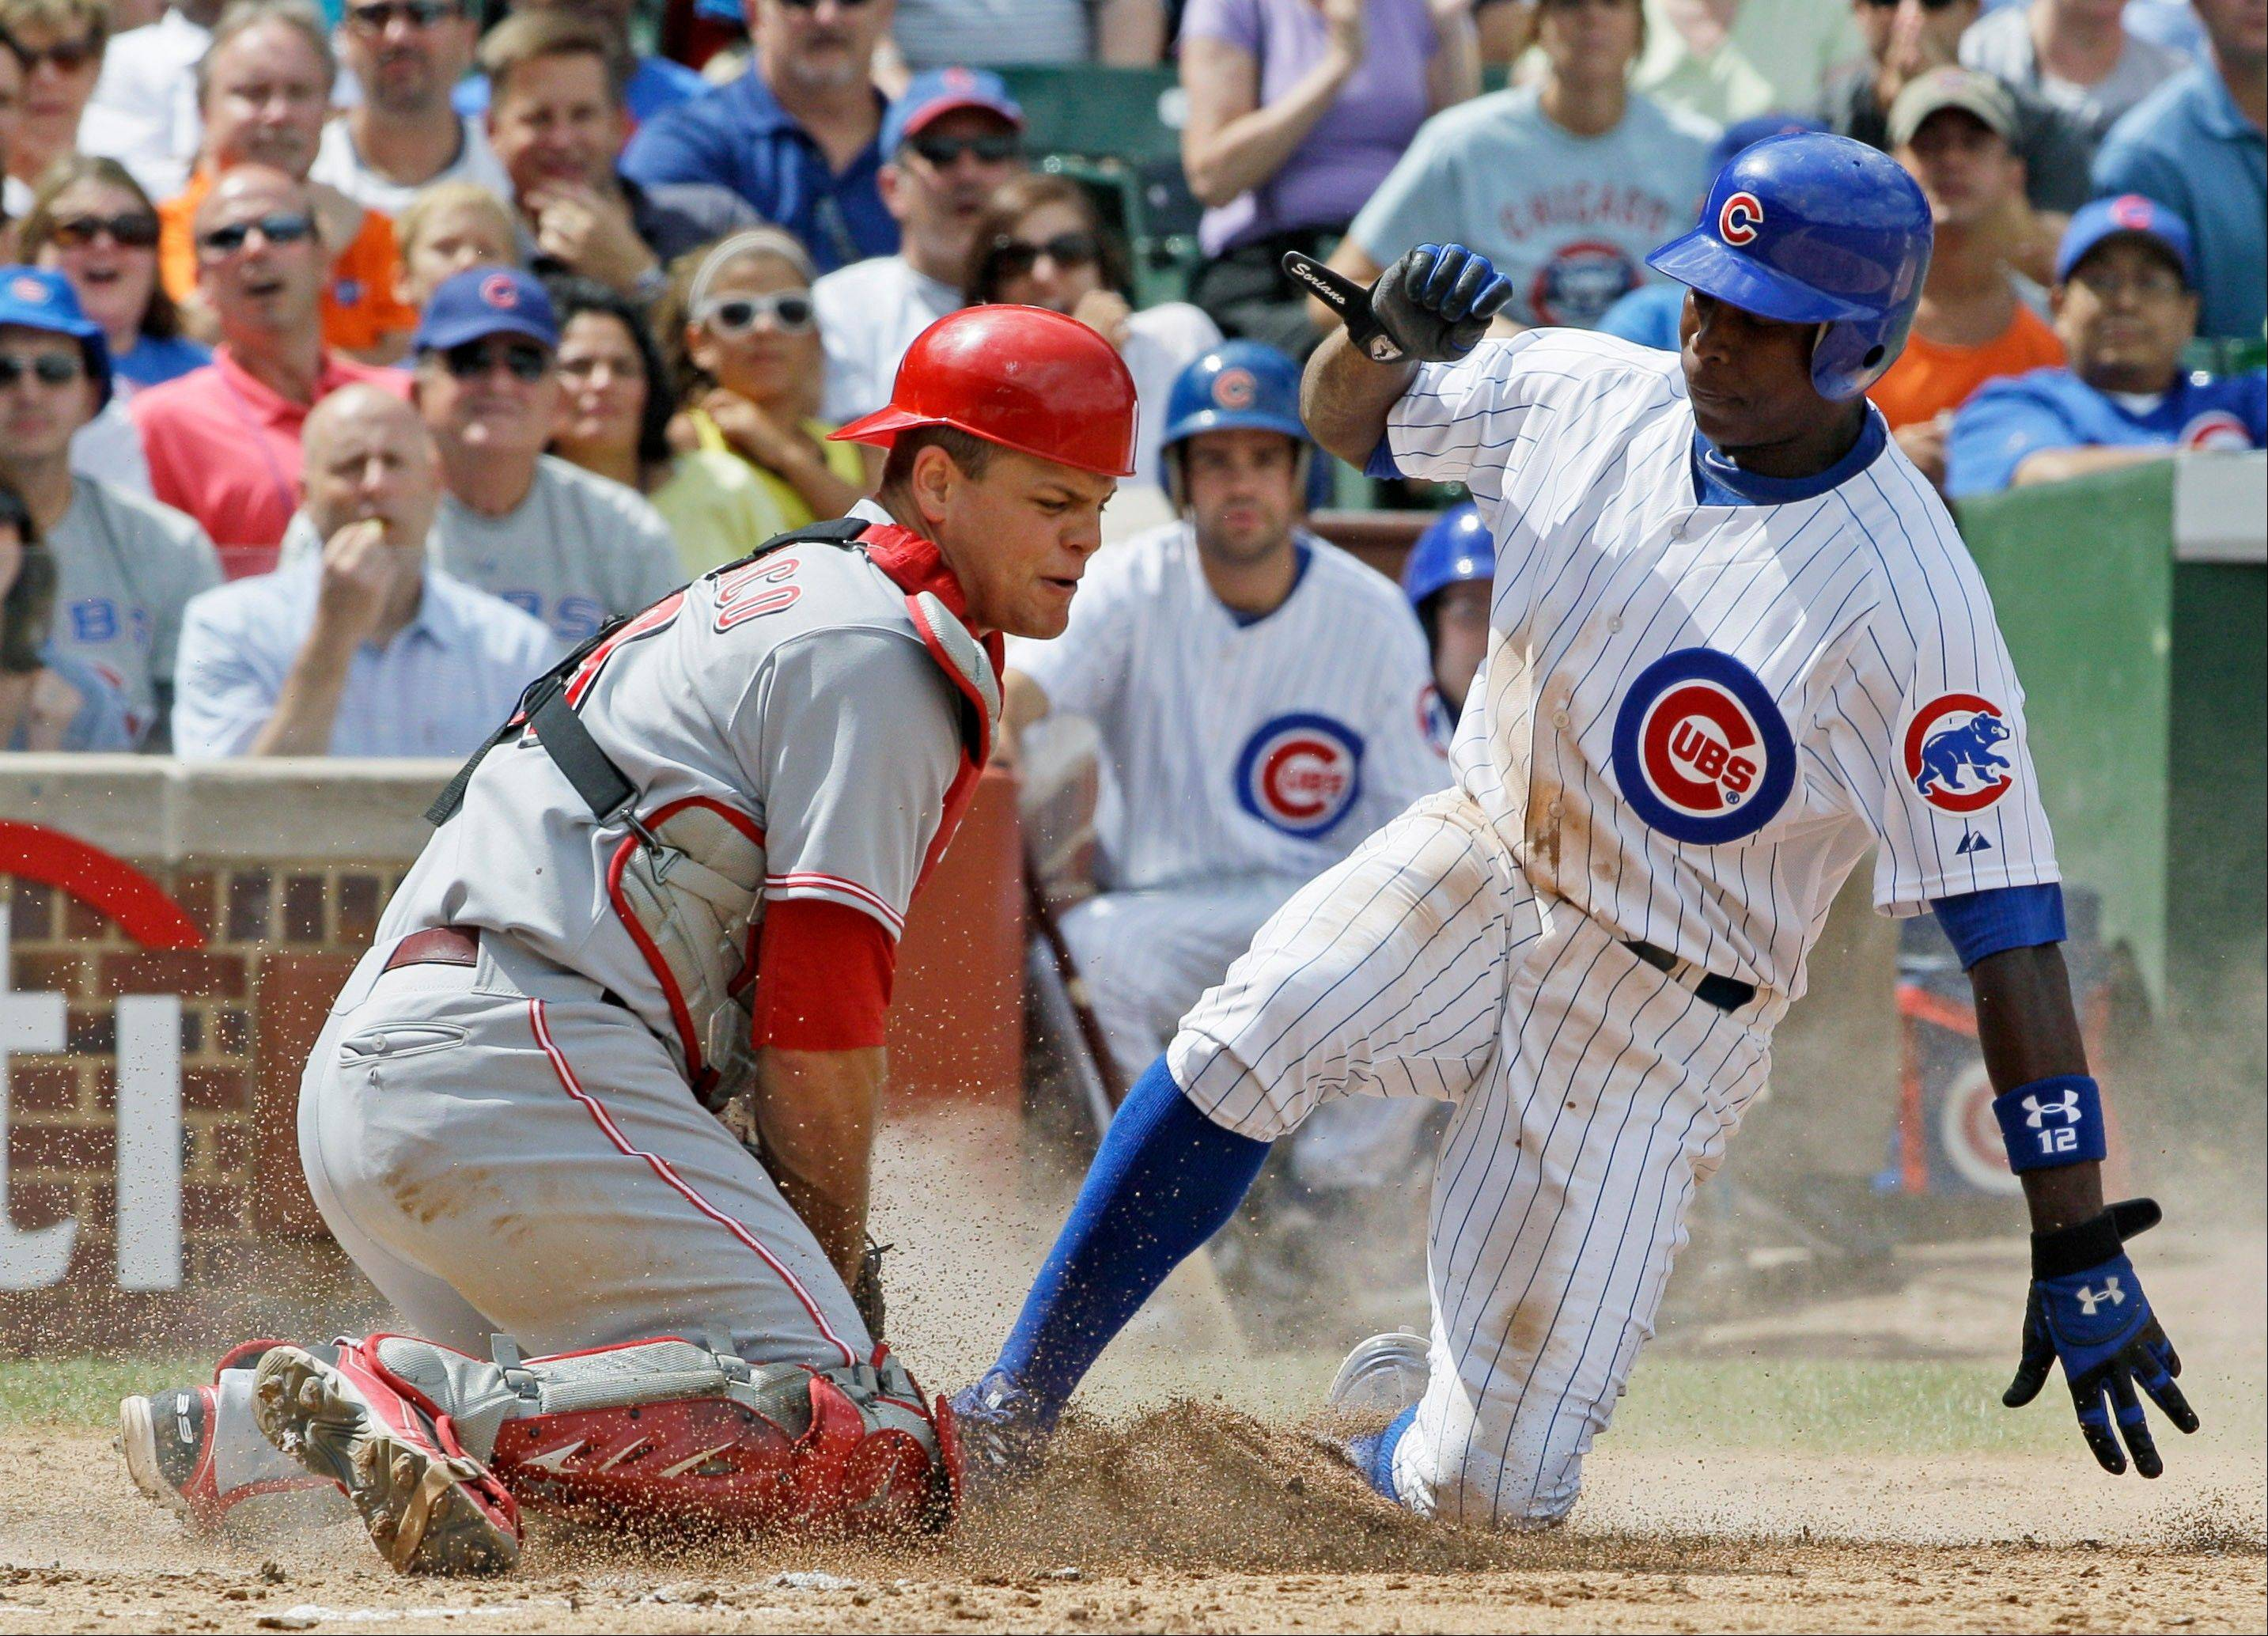 Reds catcher Devin Mesoraco, left, tags out Alfonso Soriano during the third inning of the Cubs� 10-8 loss to Cincinnati on Friday at Wrigley Field.